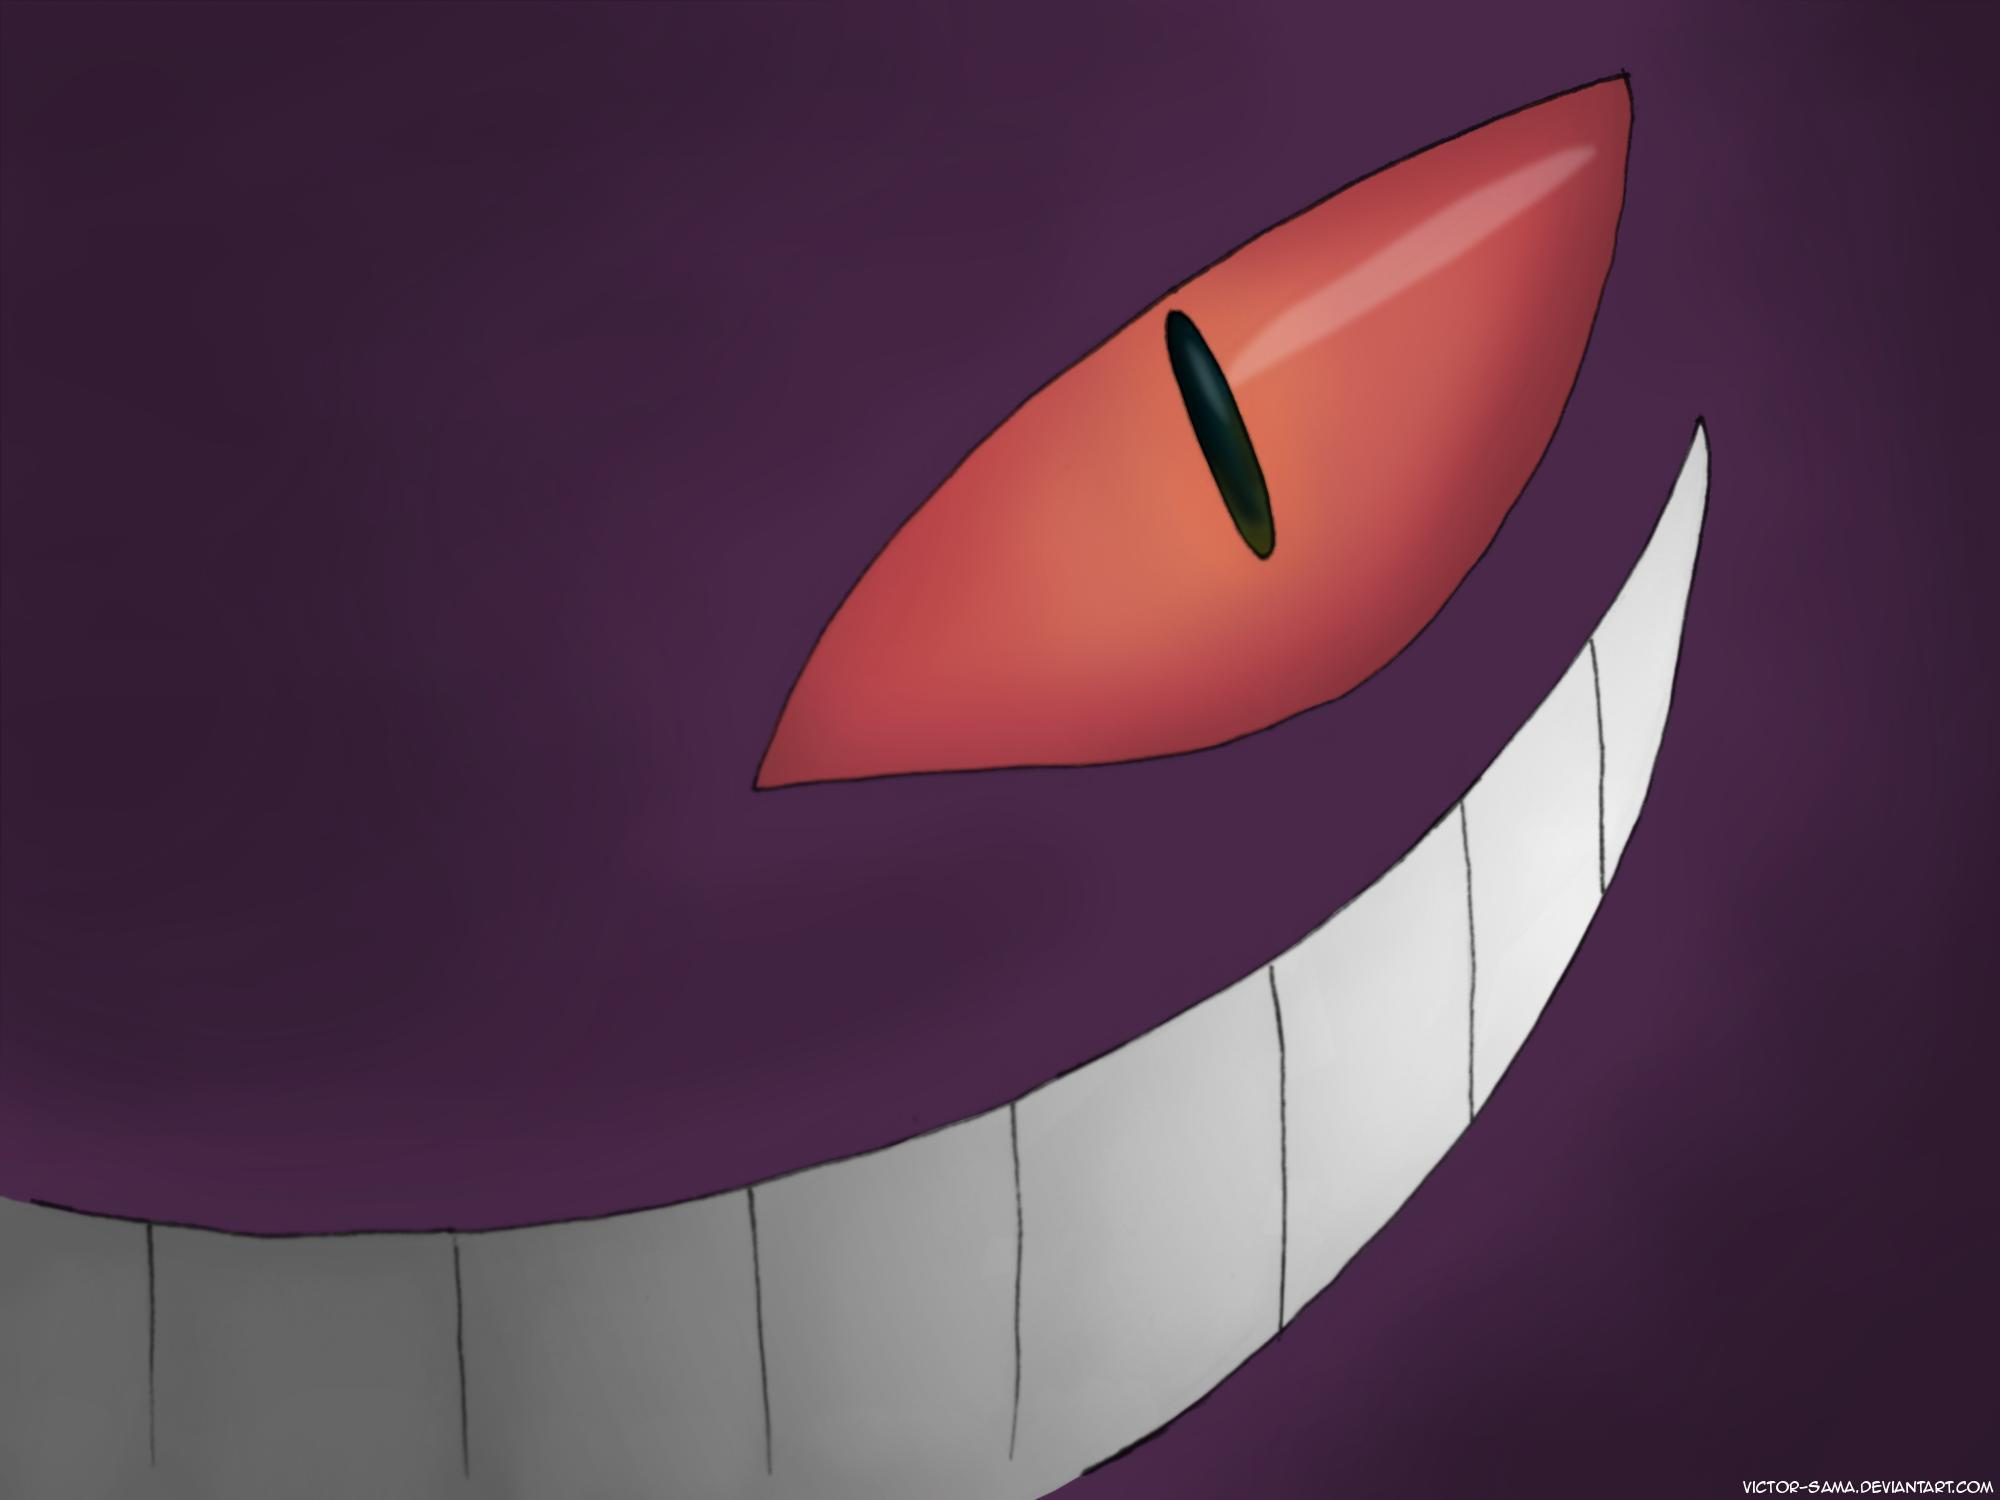 Awesome Cute Wallpapers For Android Gengar Wallpapers Wallpaper Cave